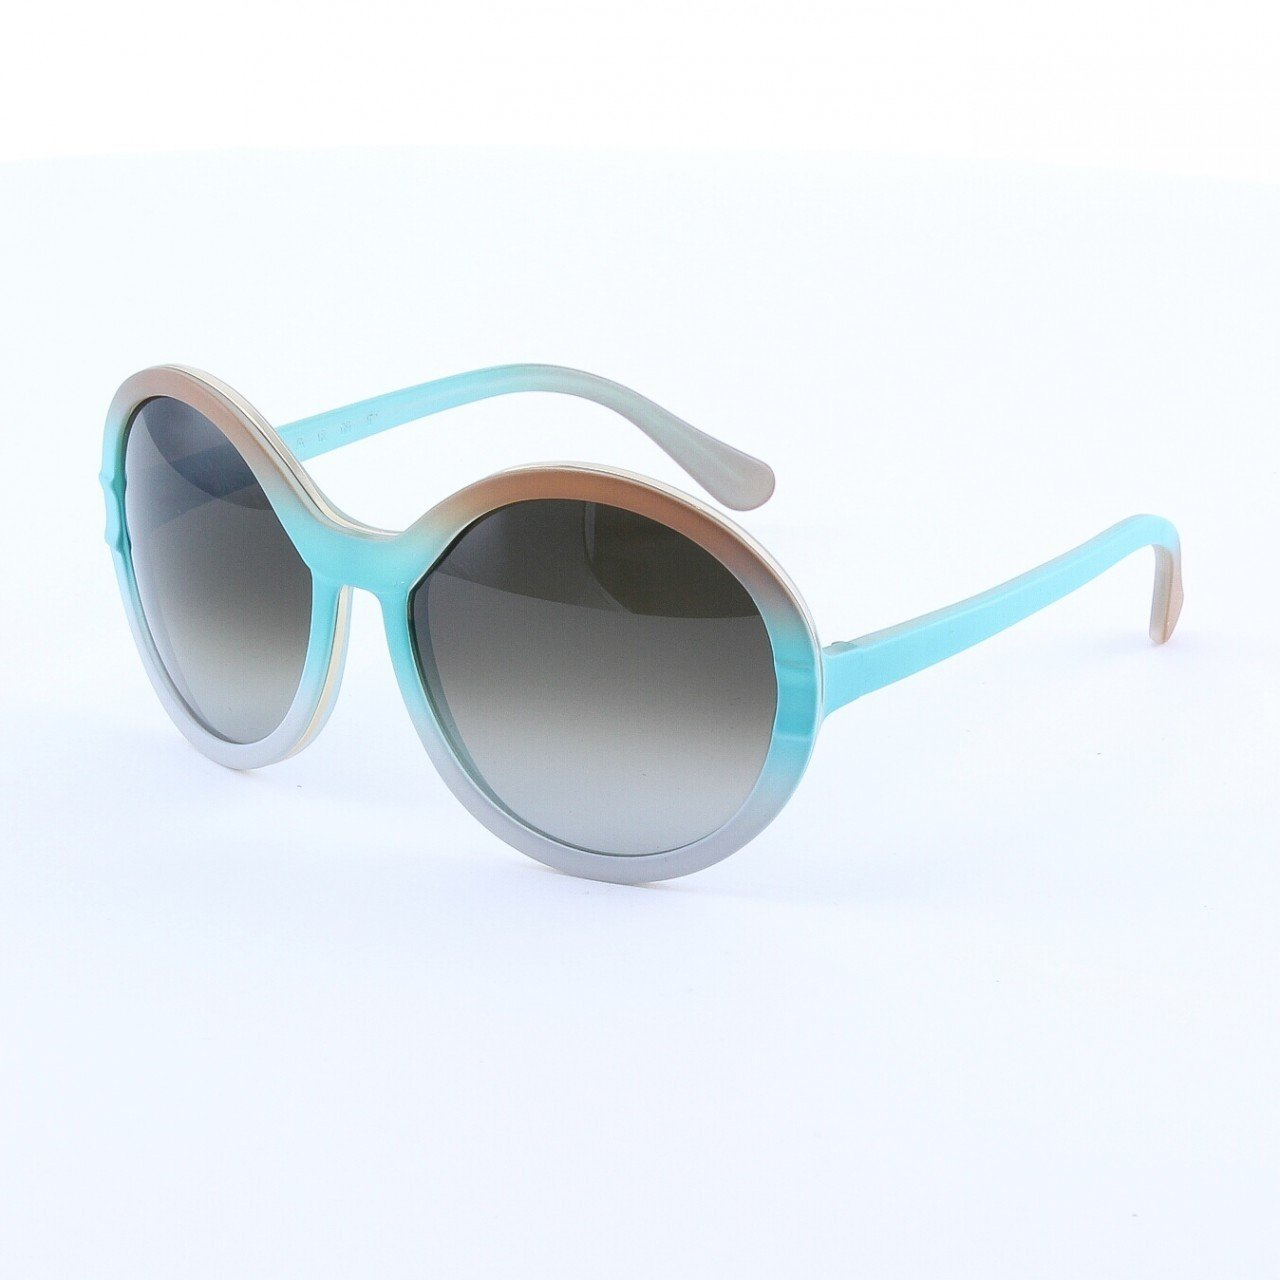 Marni MA145 Sunglasses Col. 02 Frosted Taupe Turqoise Light Pink with Brown Gradient Lenses